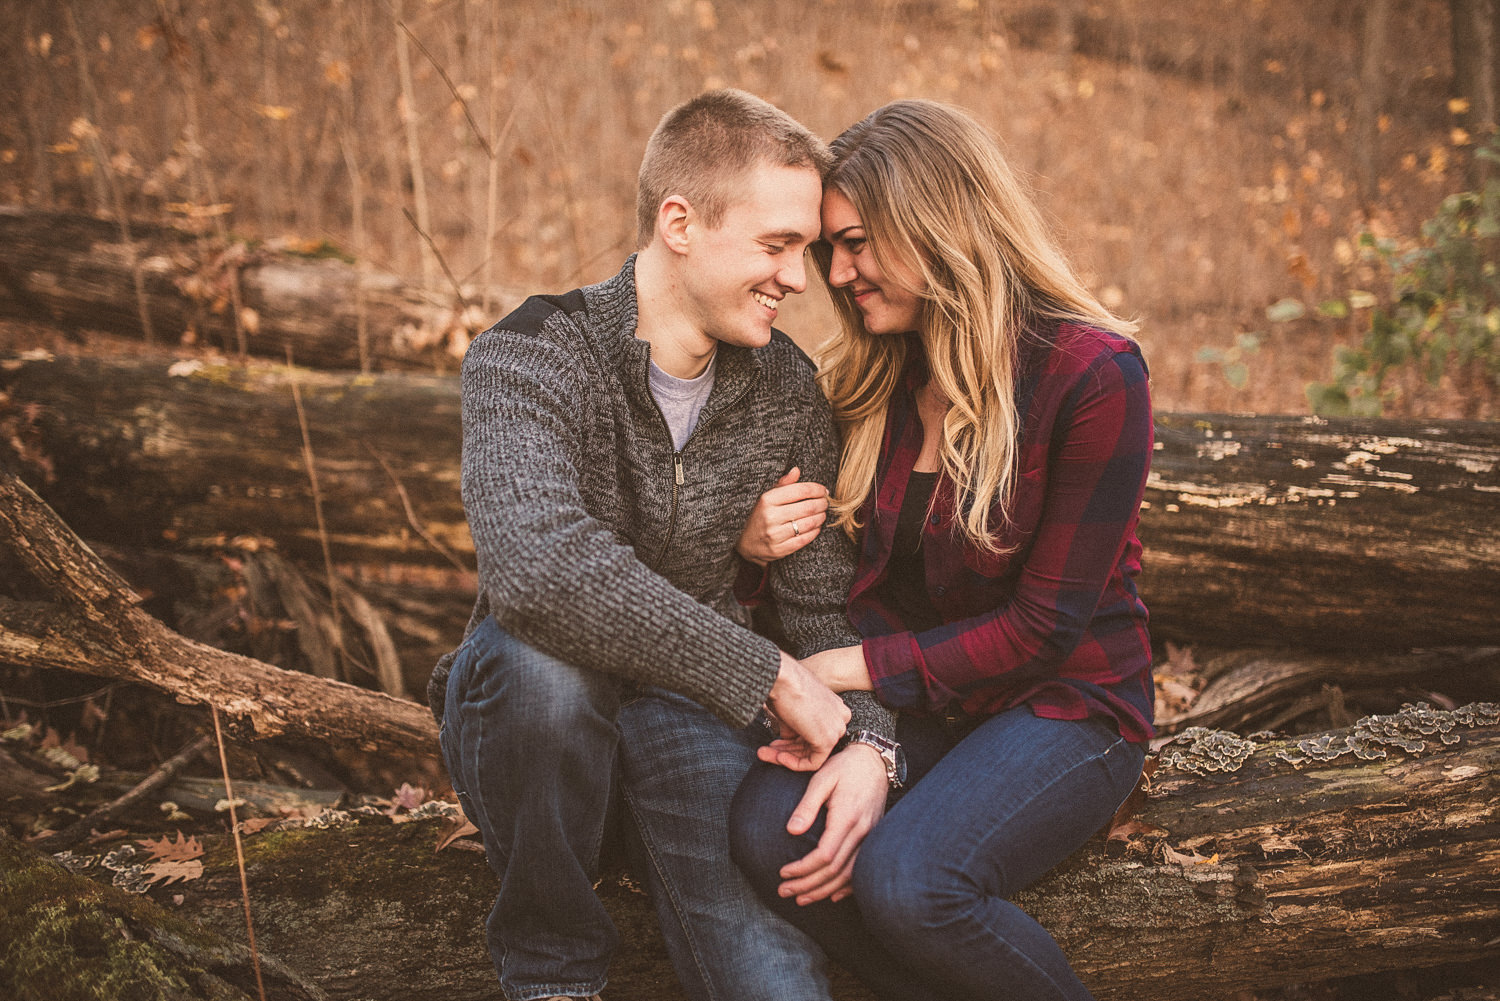 Johnson Park Downtown Grand Rapids Engagement  - 17.jpg